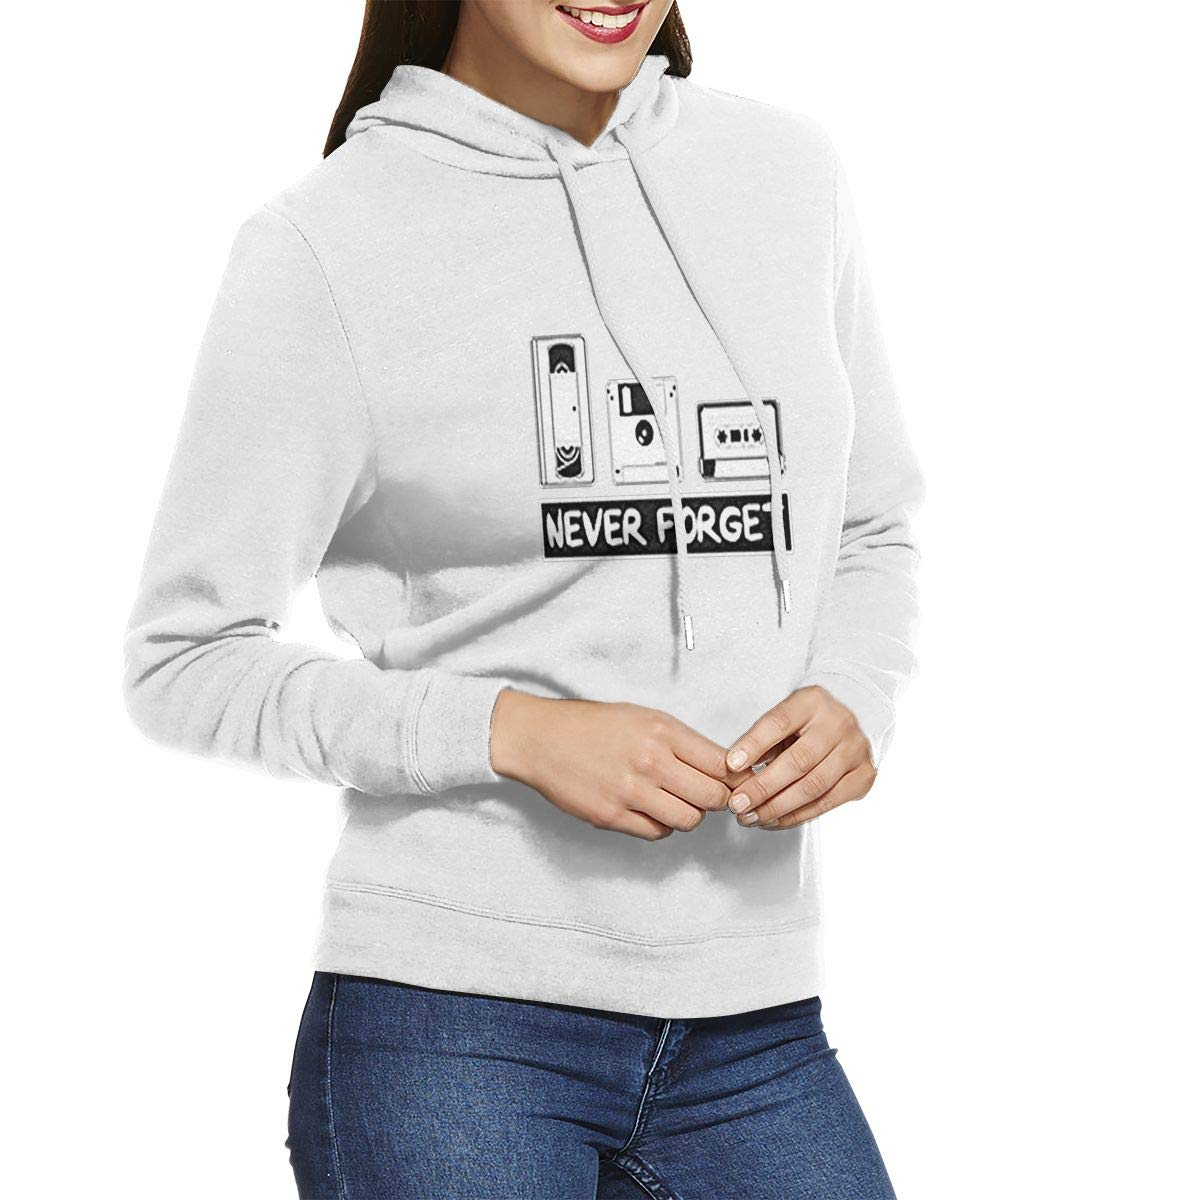 Video Tape Fantastic Girl Casual Hooded DERTYV Womens Sweater Never Forget